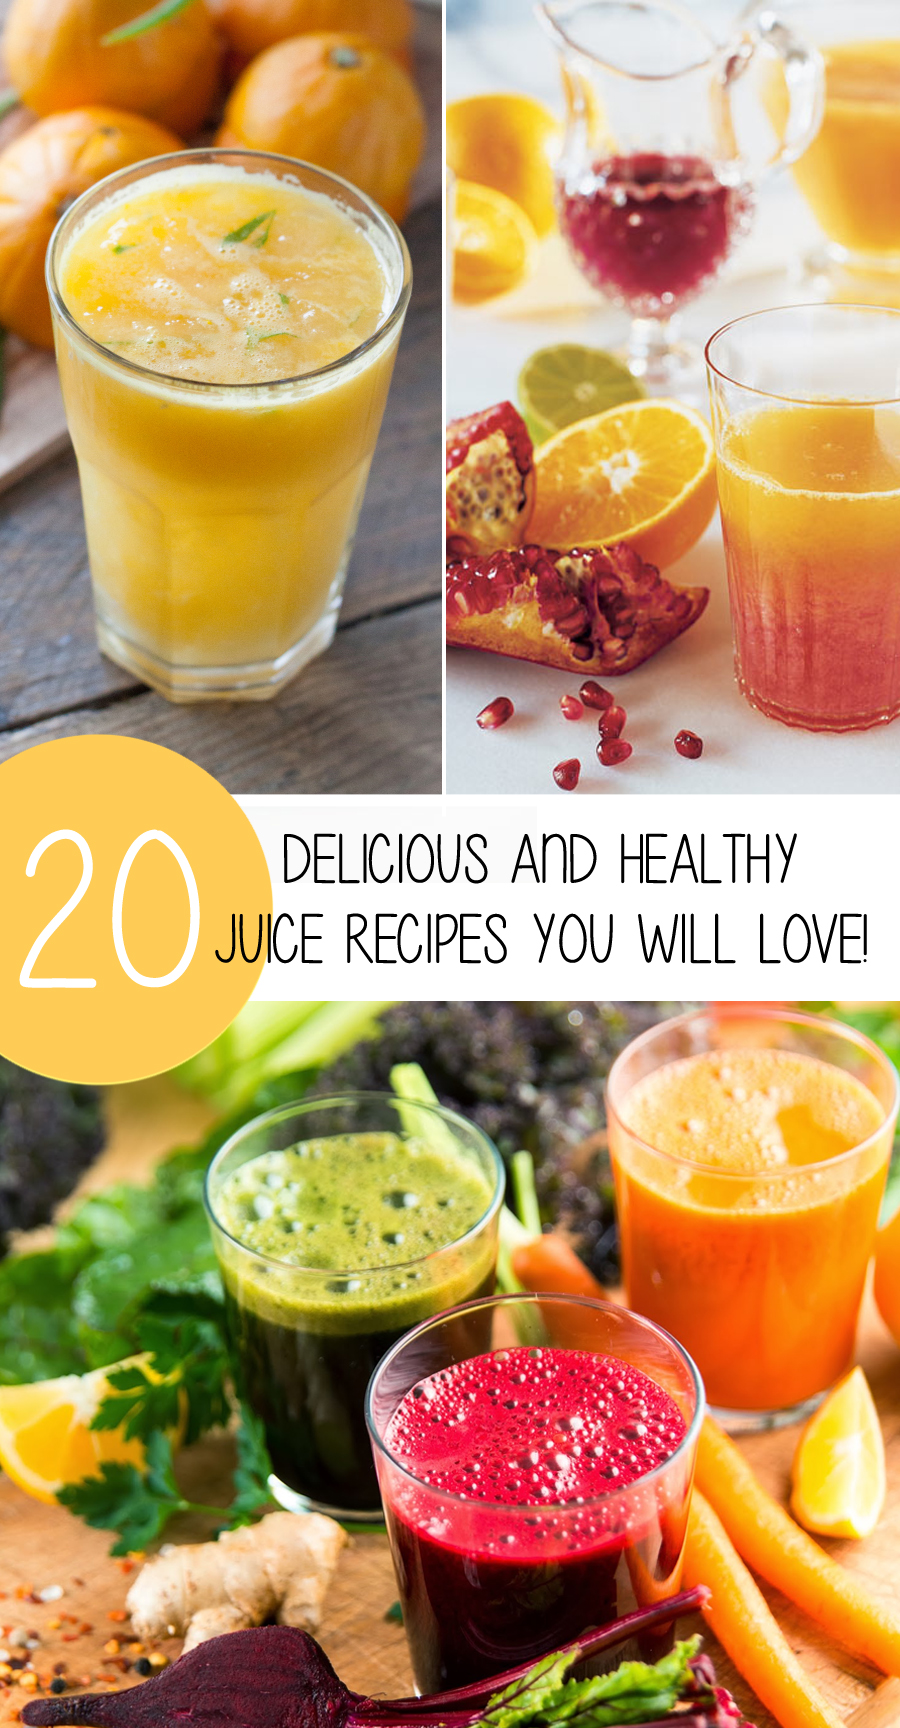 20-Healthy-Juice-Recipes-You-Will-Love